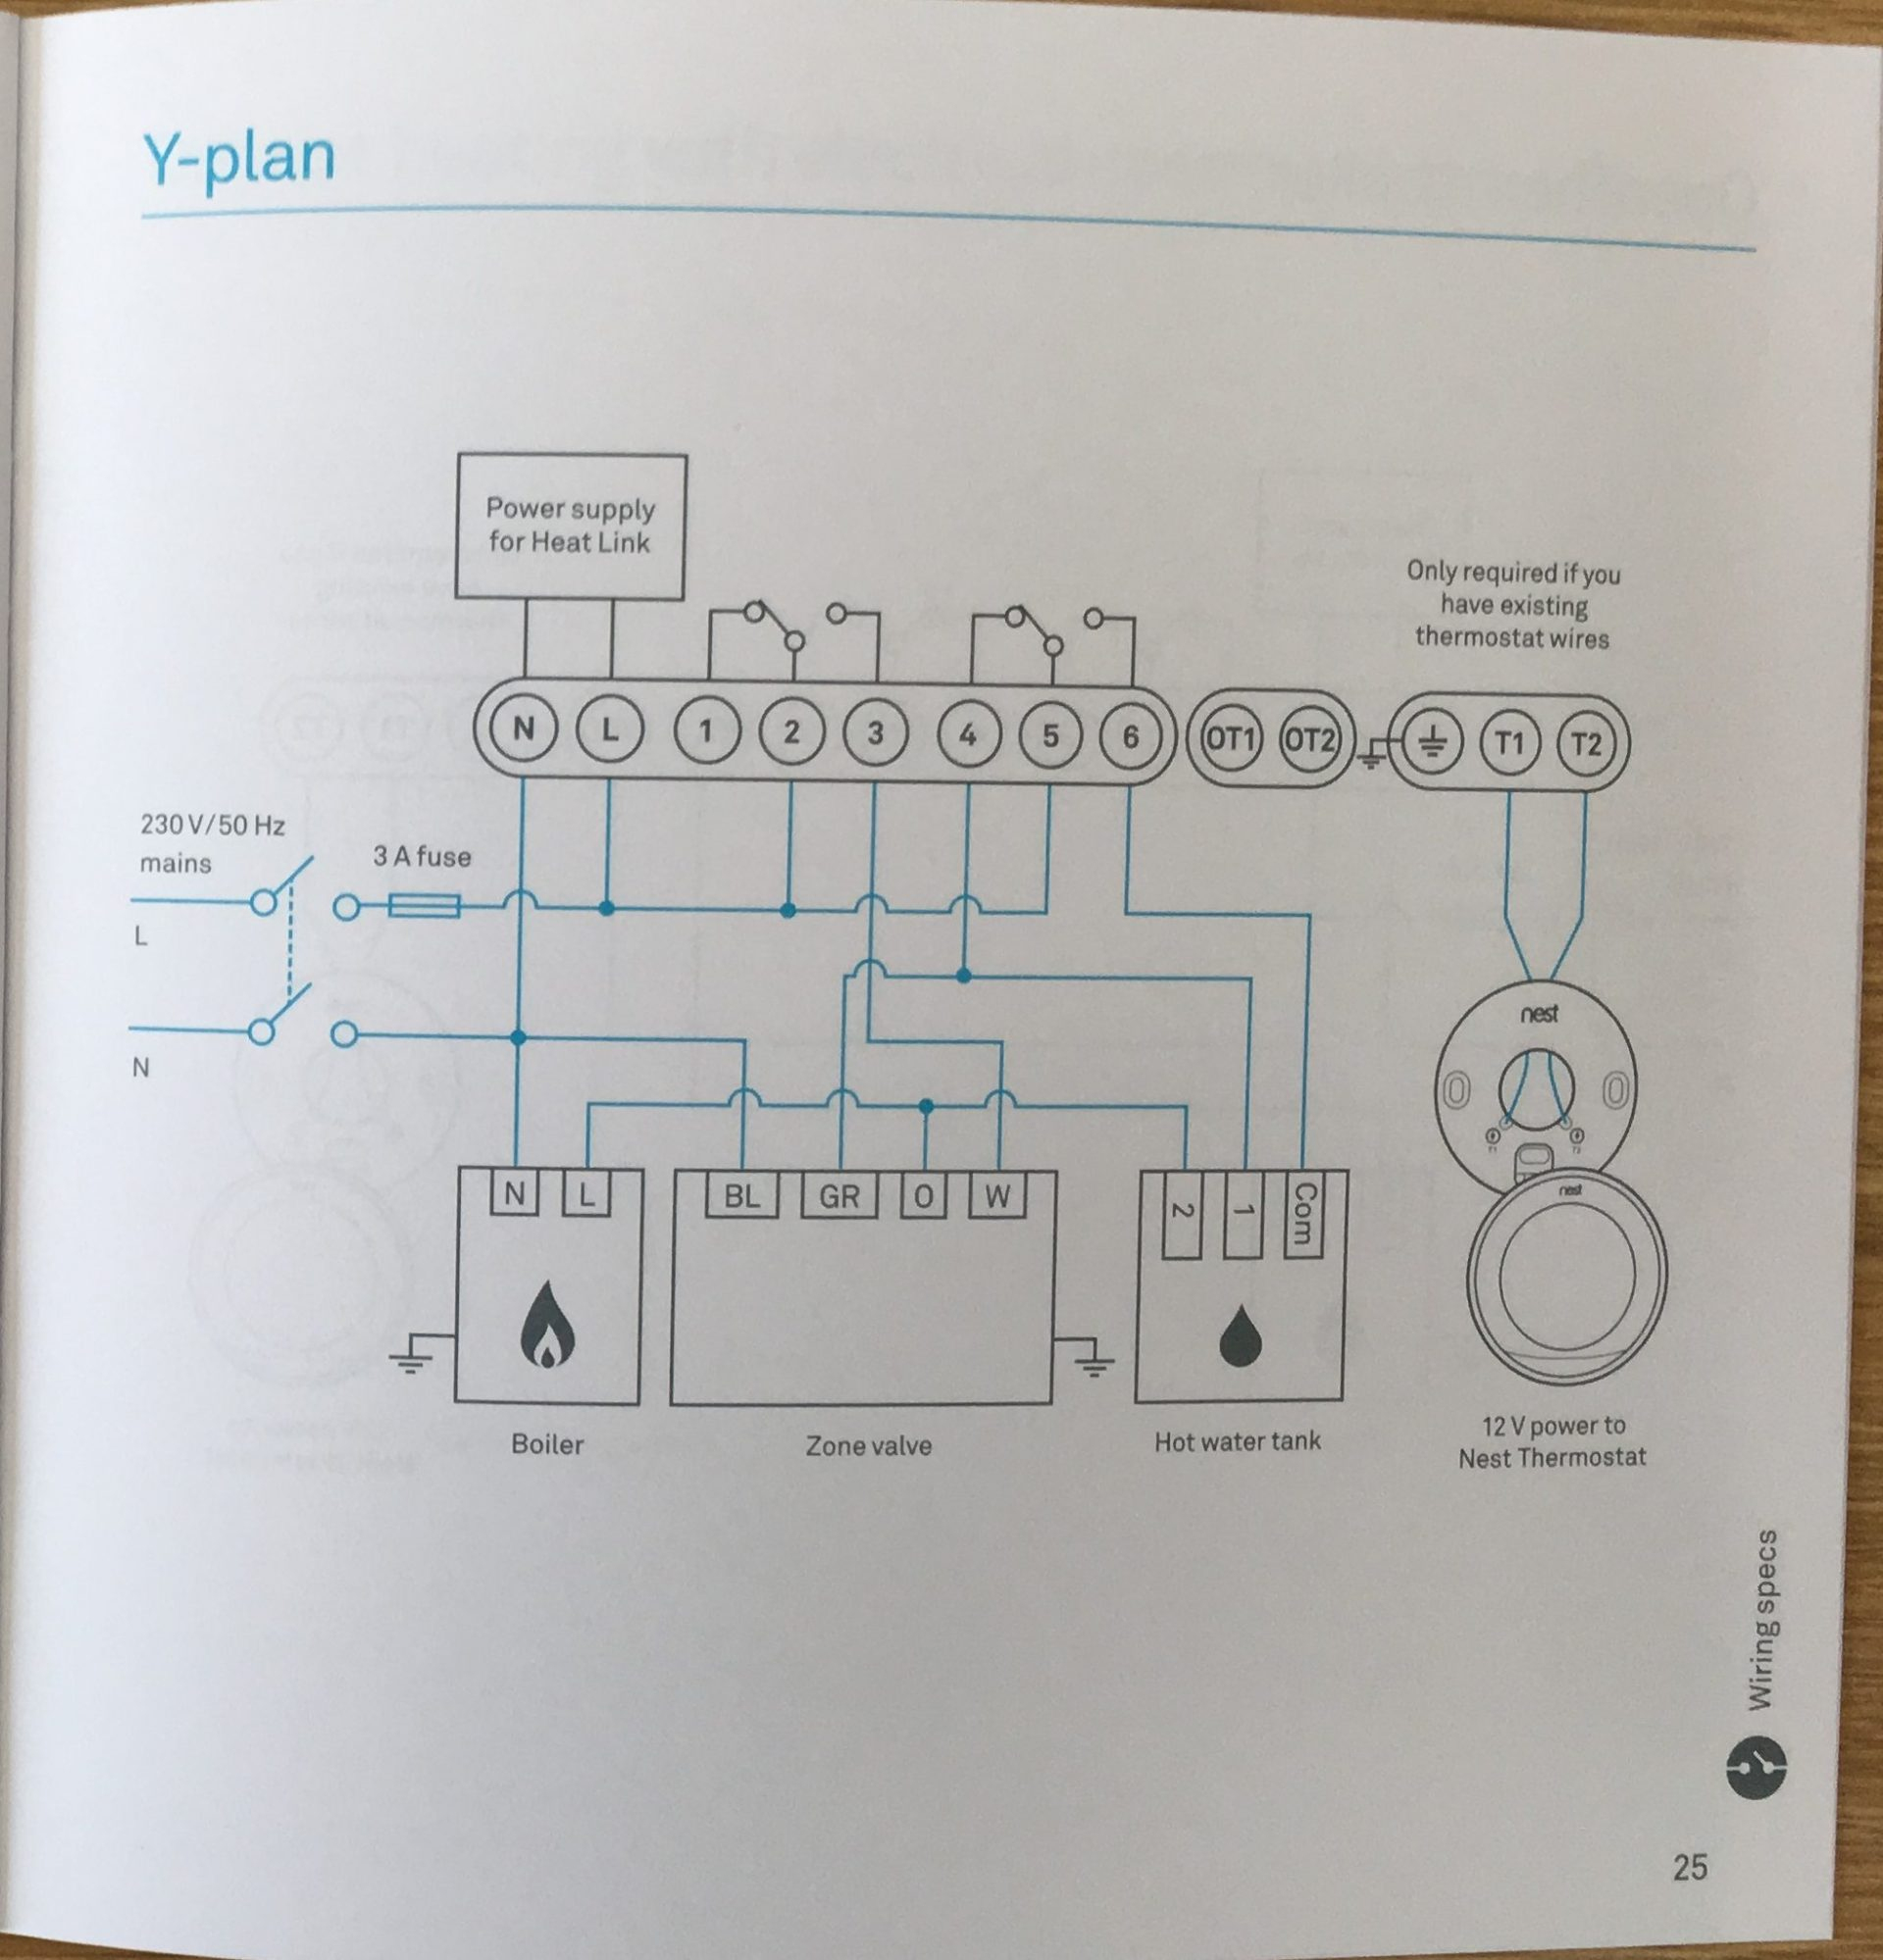 How To Install The Nest Learning Thermostat (3Rd Gen) In A Y-Plan - Nest Heat Link E Wiring Diagram